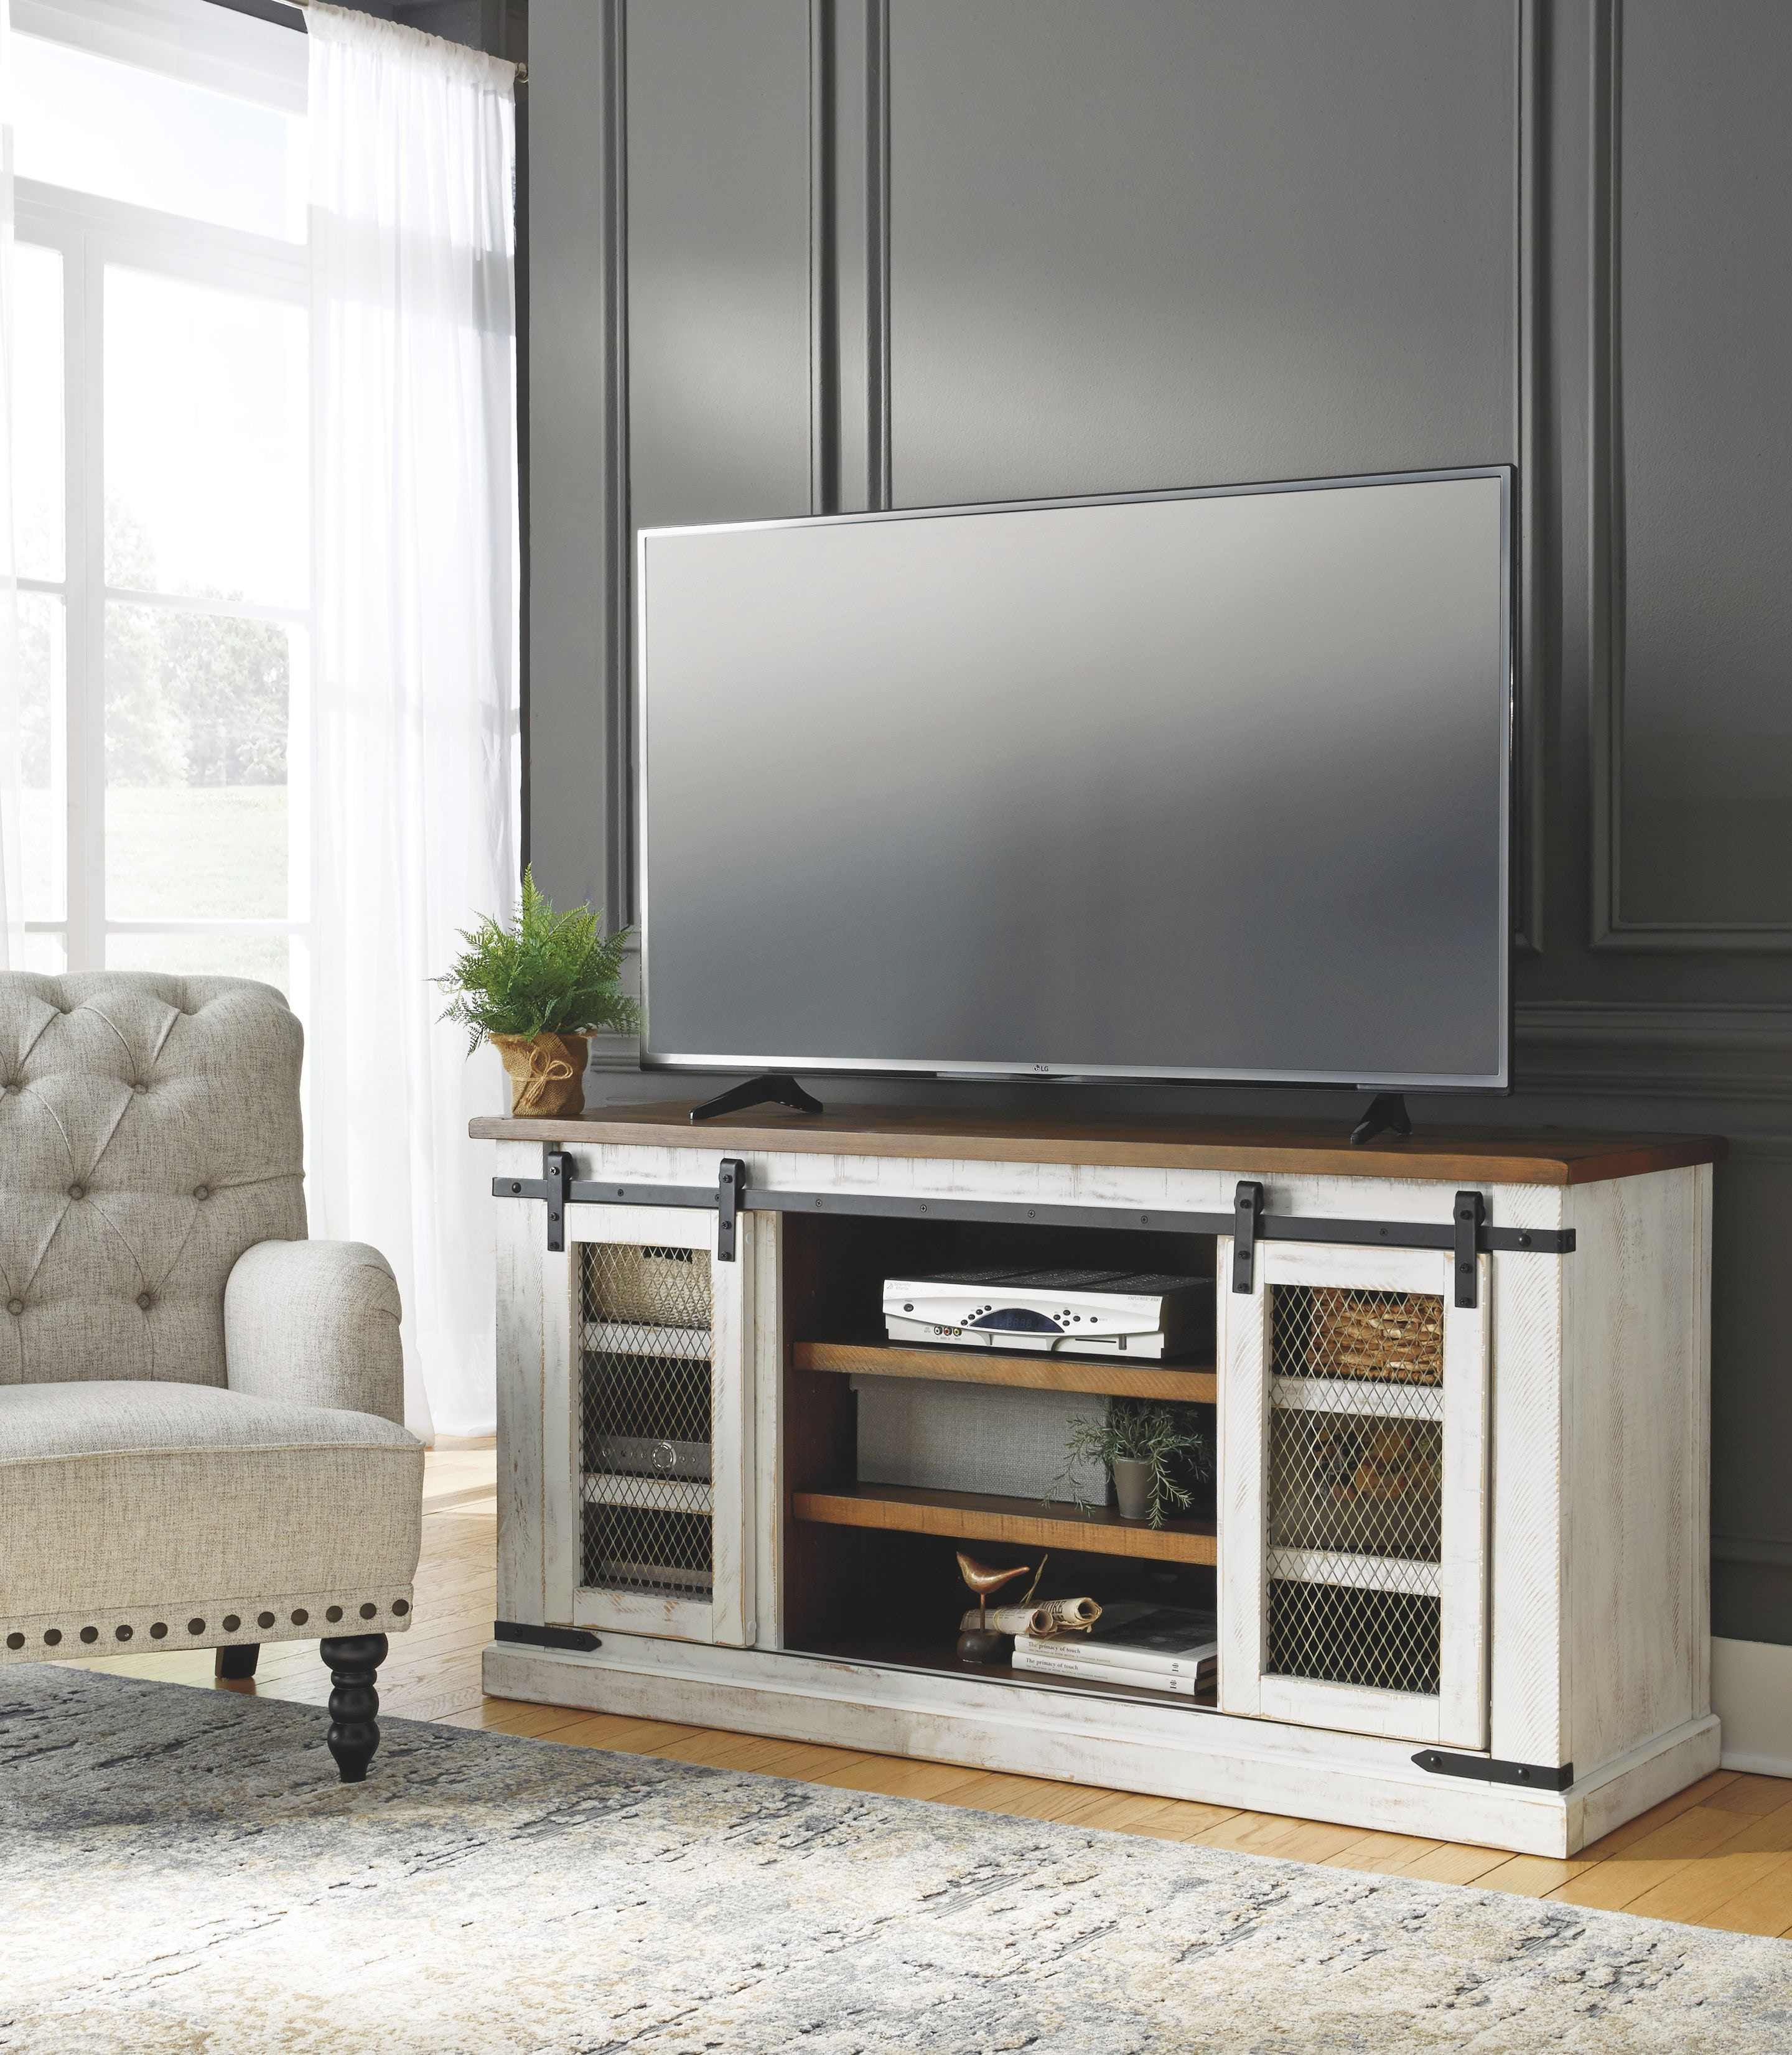 Signature Design By Ashley Home Entertainment Large TV Stand At Skaff  Furniture Carpet One Floor U0026